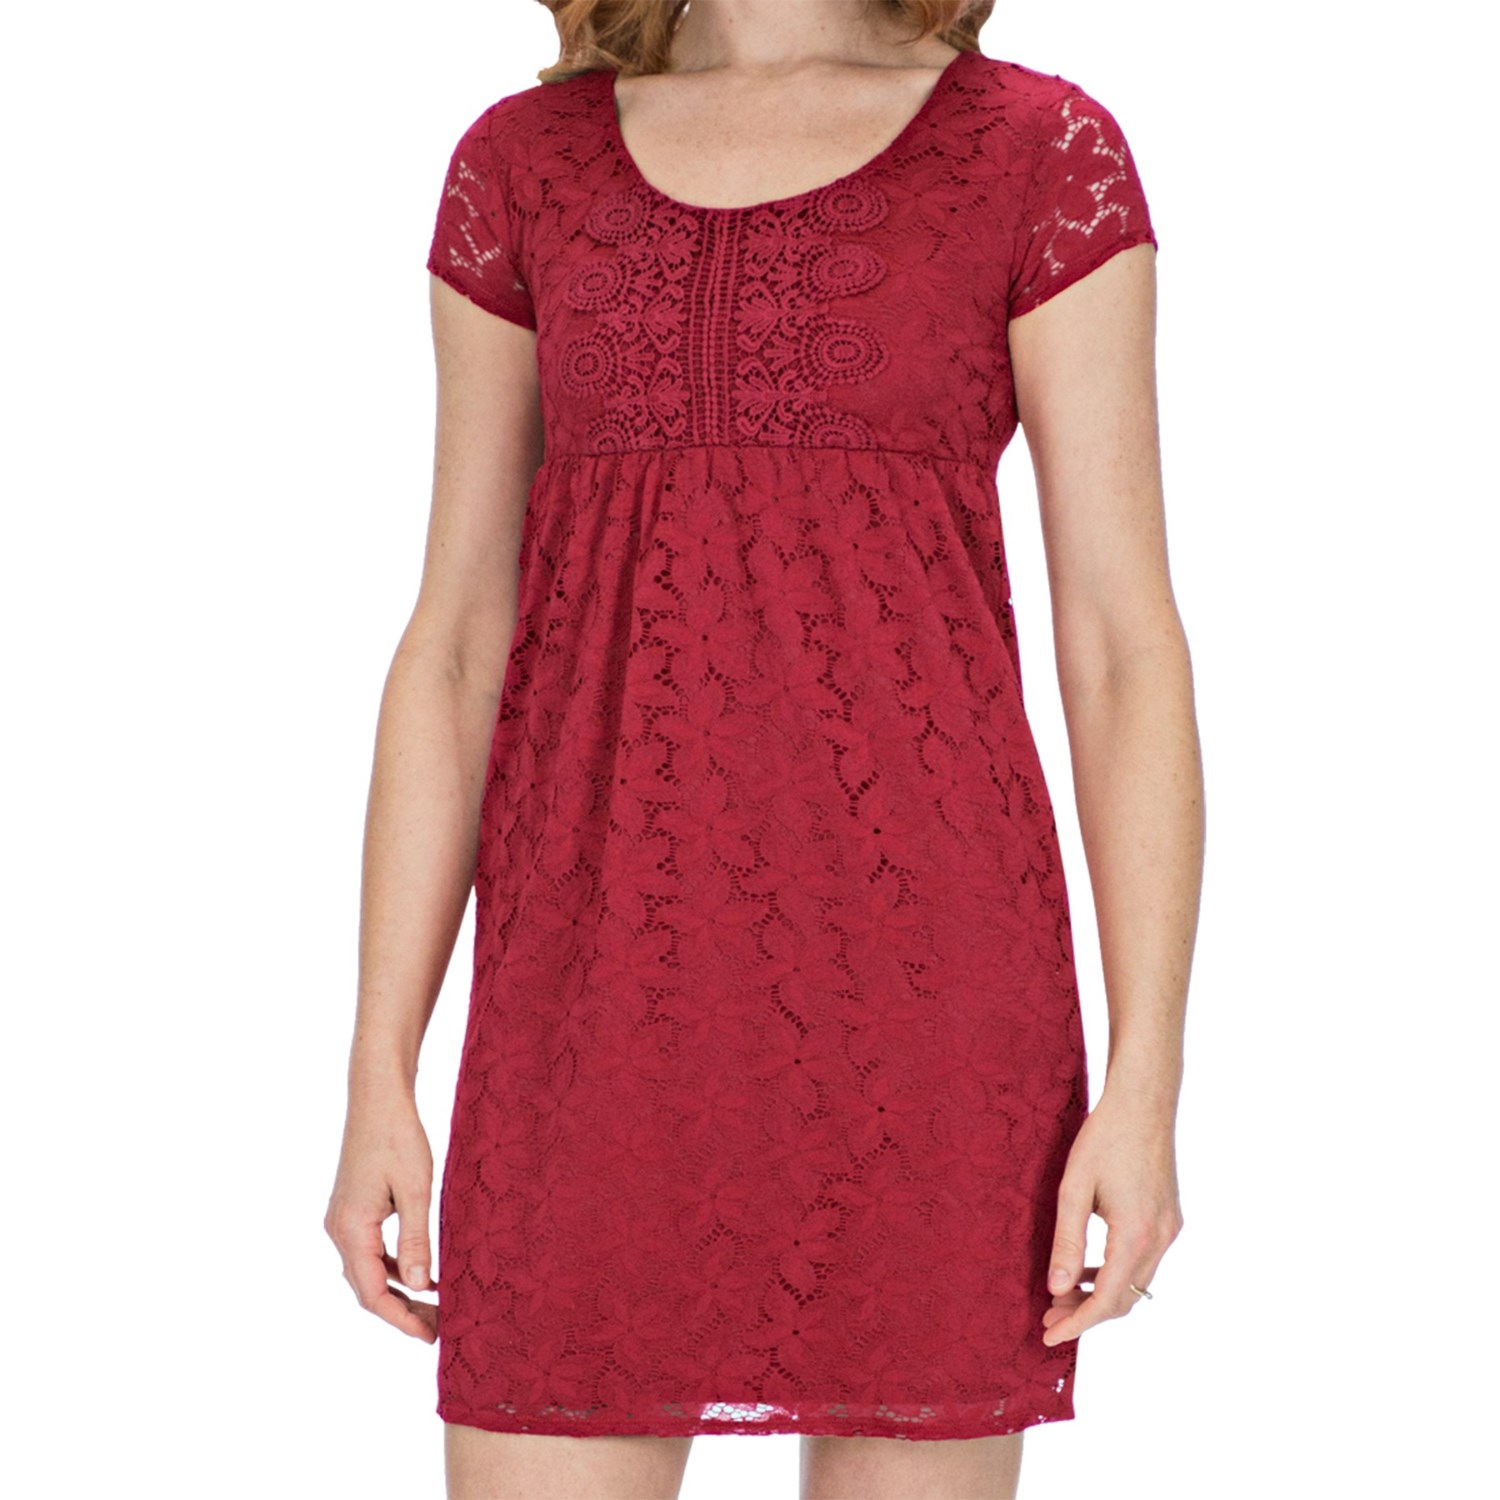 Laundry By Design Sand Dollar Lace Dress Short Sleeve